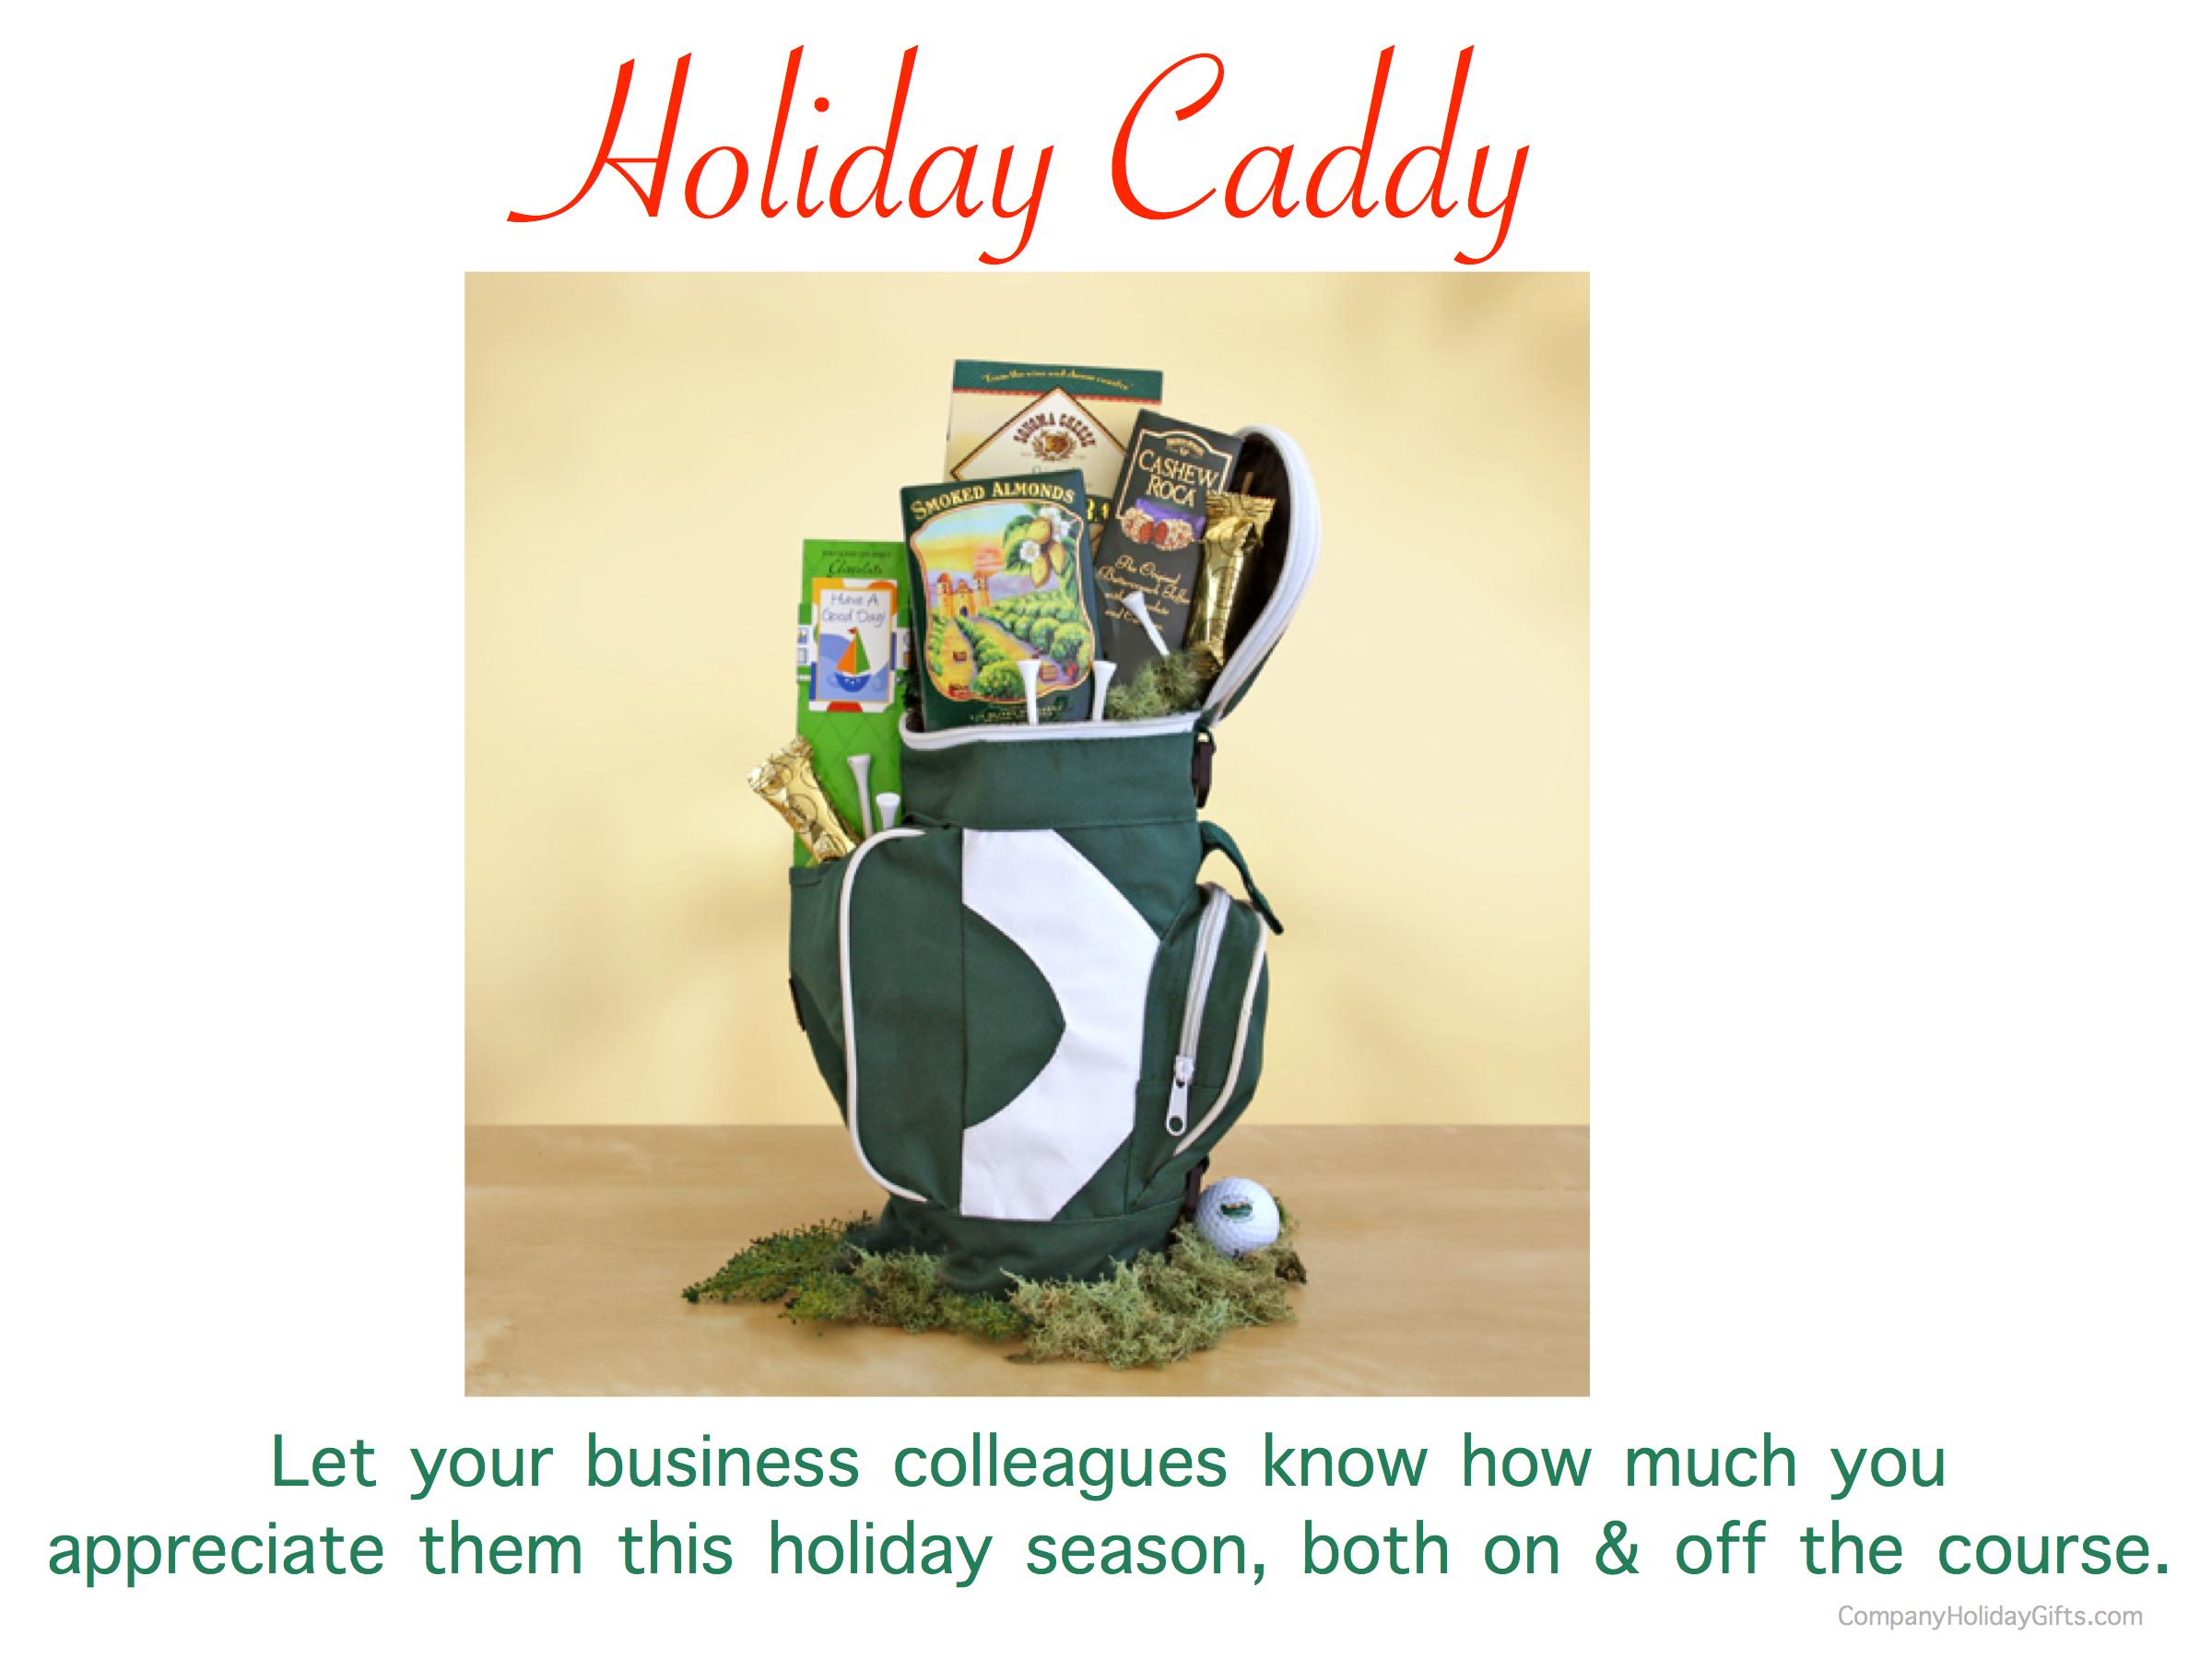 Holiday Caddy, 20 Best Company Holiday Gift Ideas Under $100.00